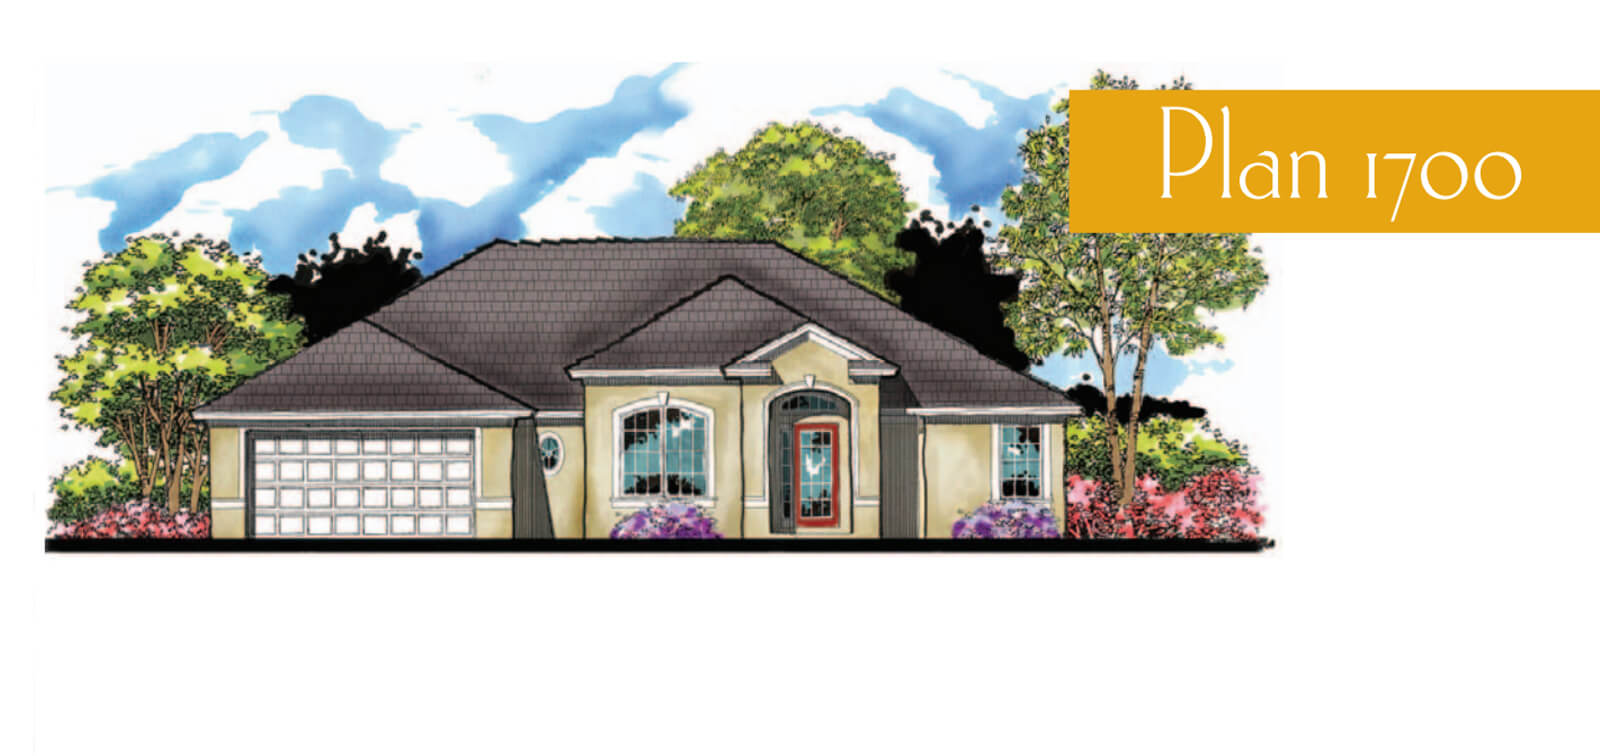 Floor Plans,1,001 SQ FT TO 2,000 SQ FT,1023